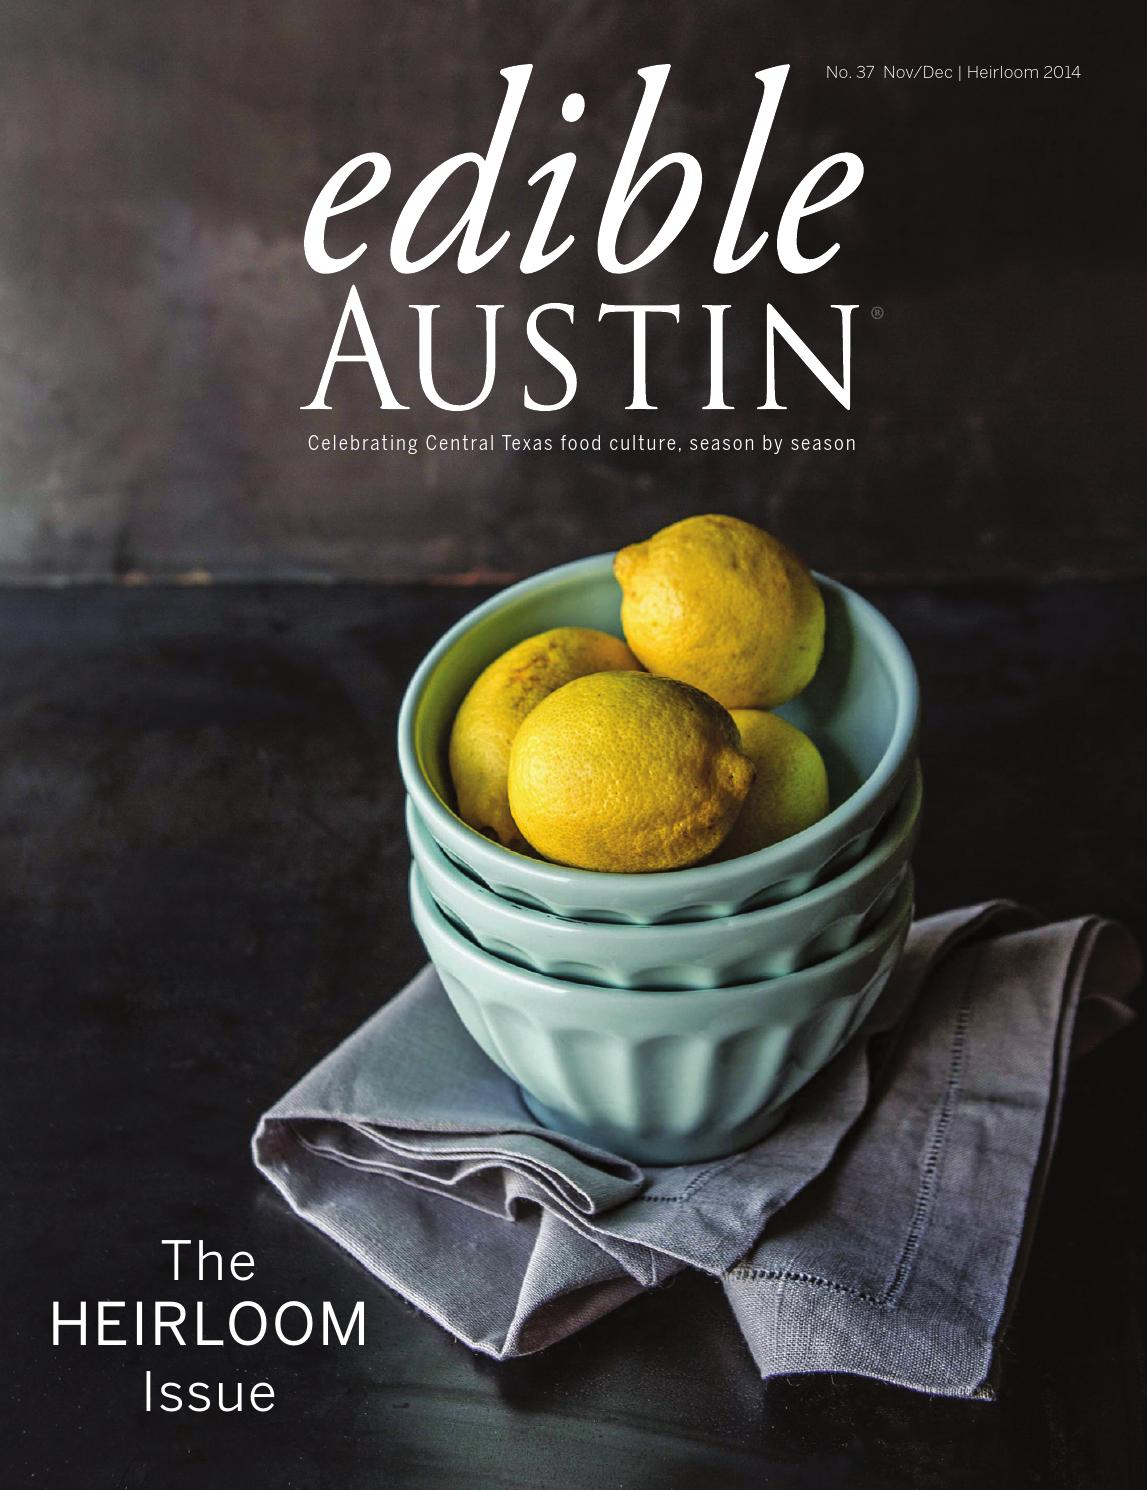 Edible Austin Heirloom Issue 2014 by Edible Austin - issuu